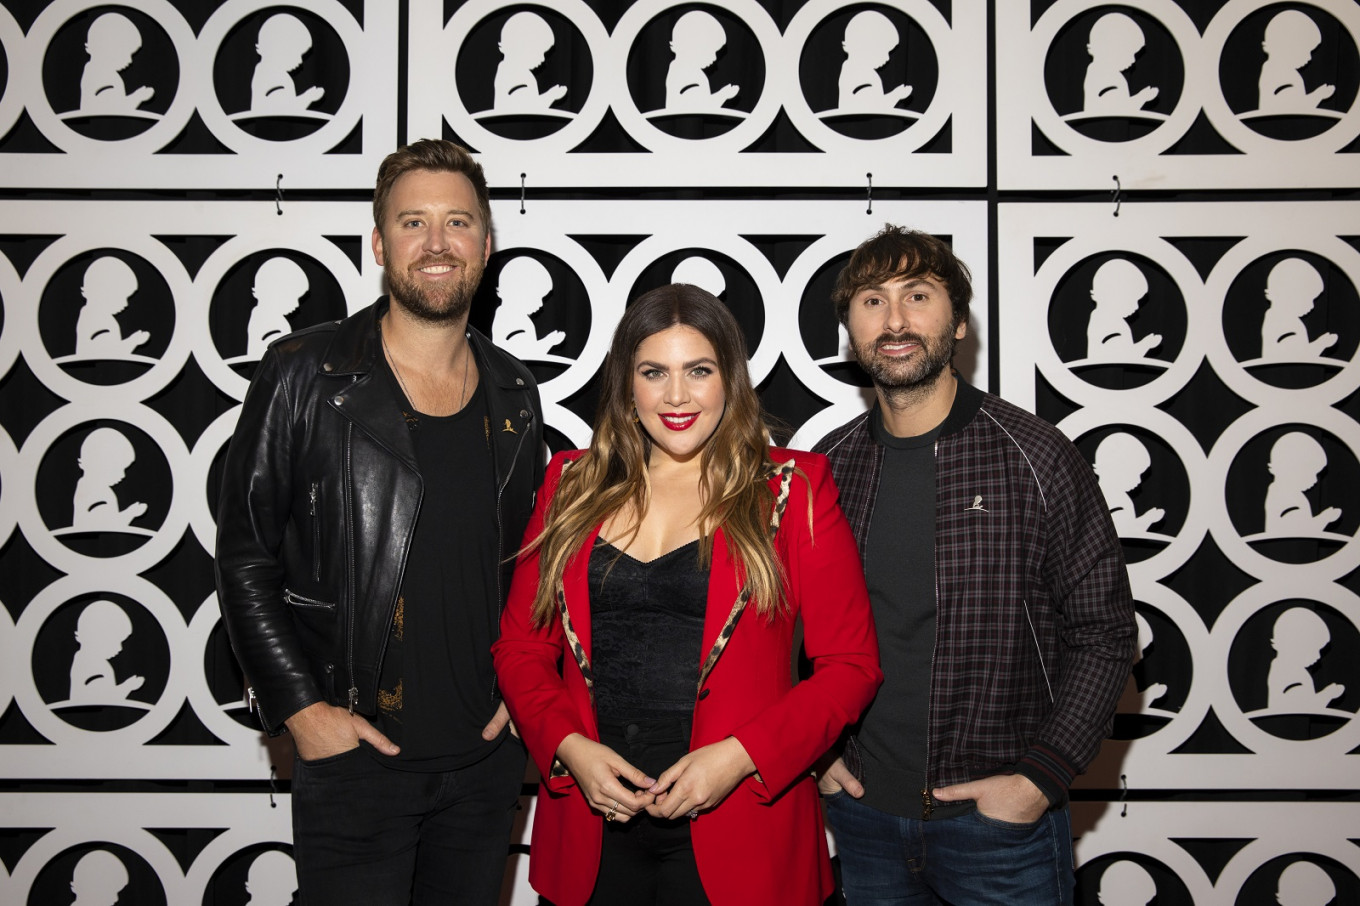 Country trio Lady Antebellum changes name to remove slavery link